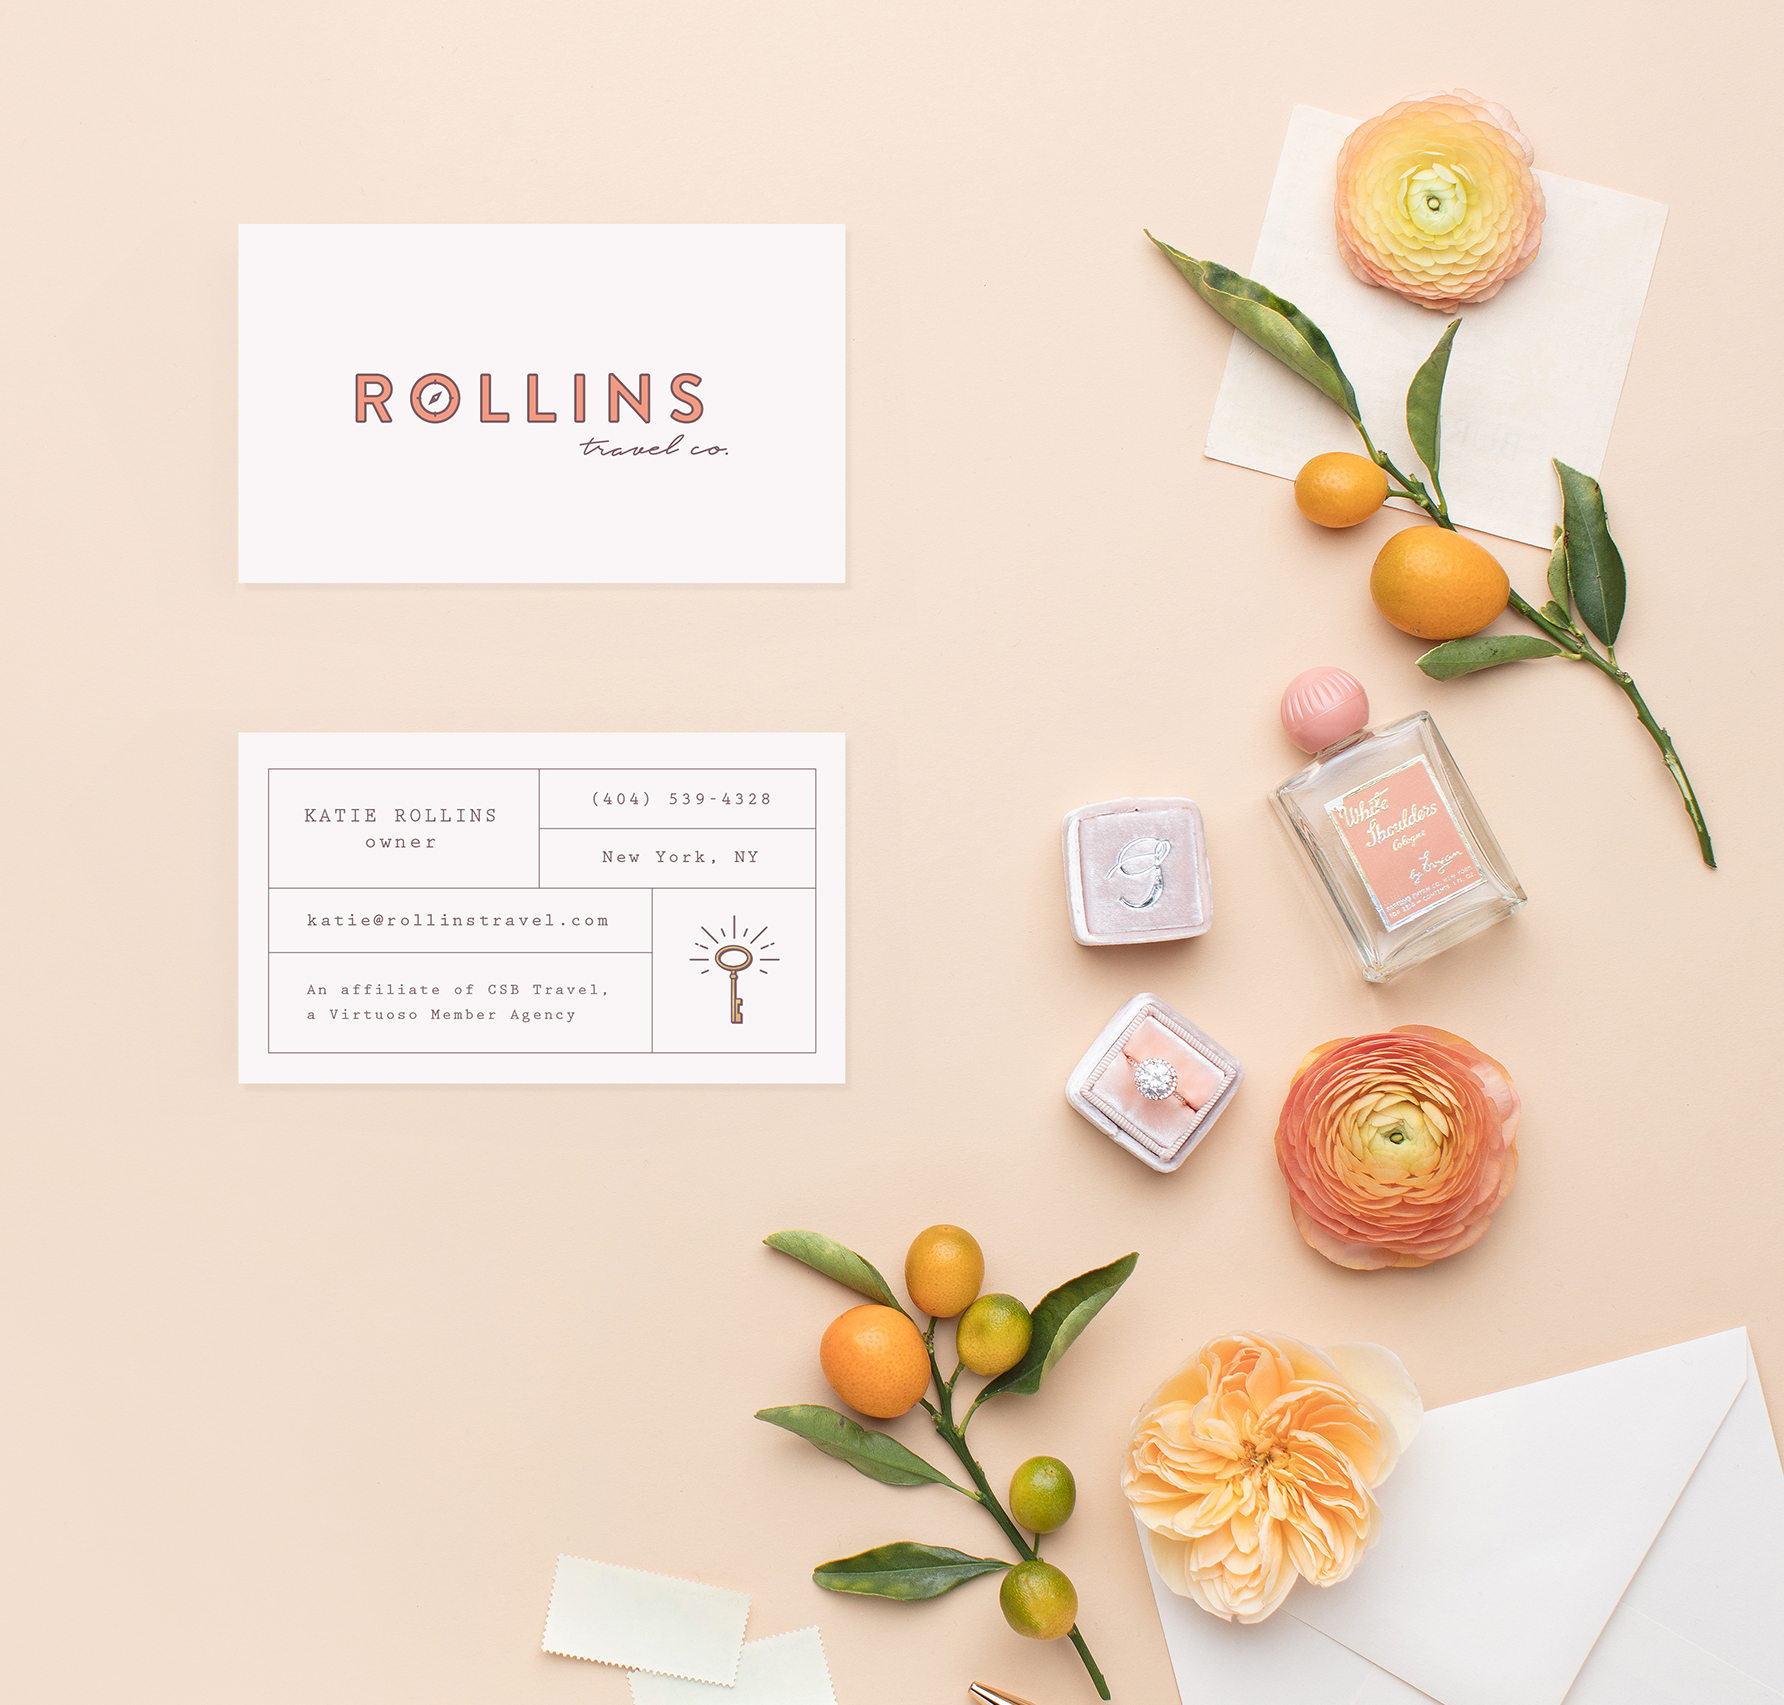 RollinsTravelCo_BusinessCards_MockupPeachStyled_Cropped4.jpg